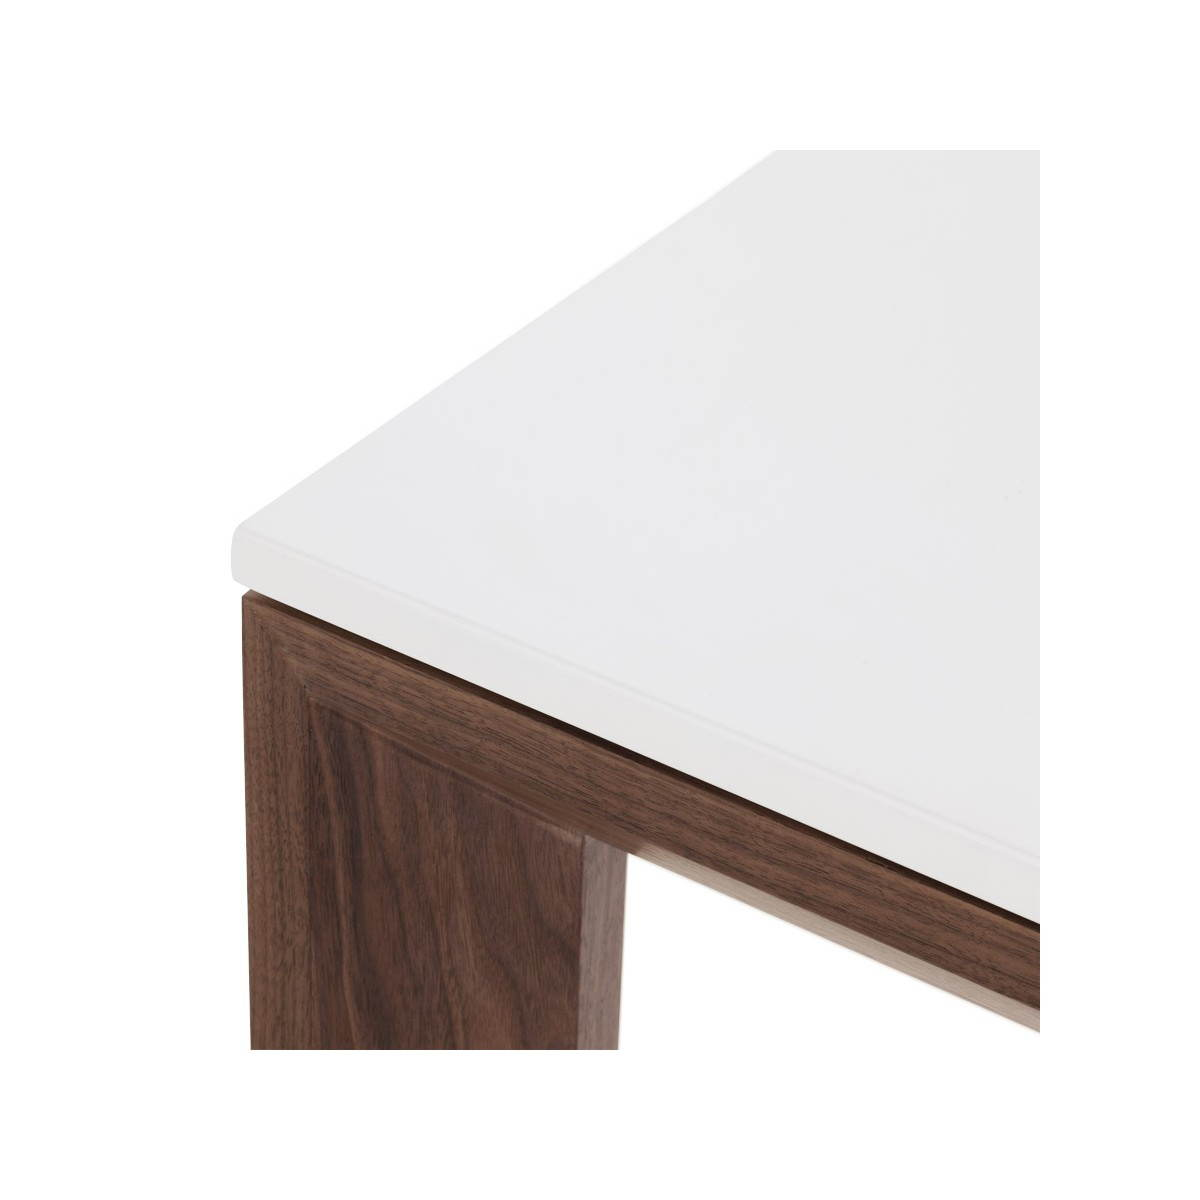 Table bois rallonge ikea for Table ronde en bois ikea